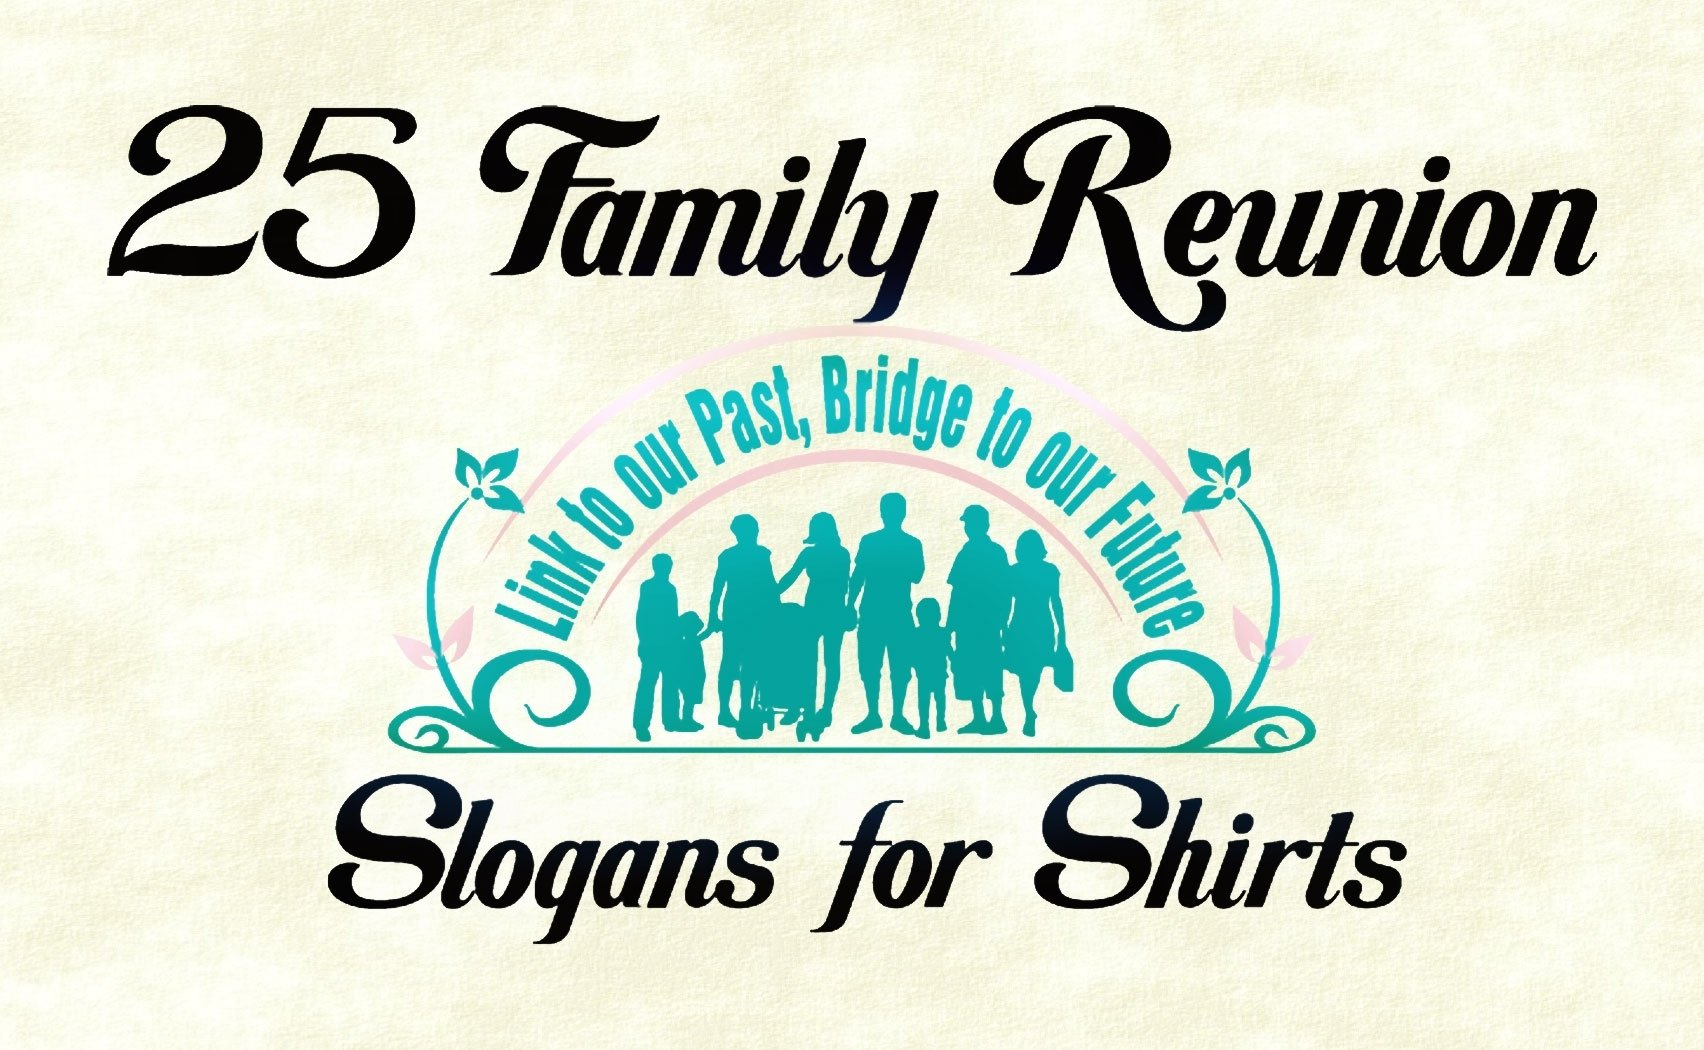 Beach Family Reunion Slogans Www Topsimages Com